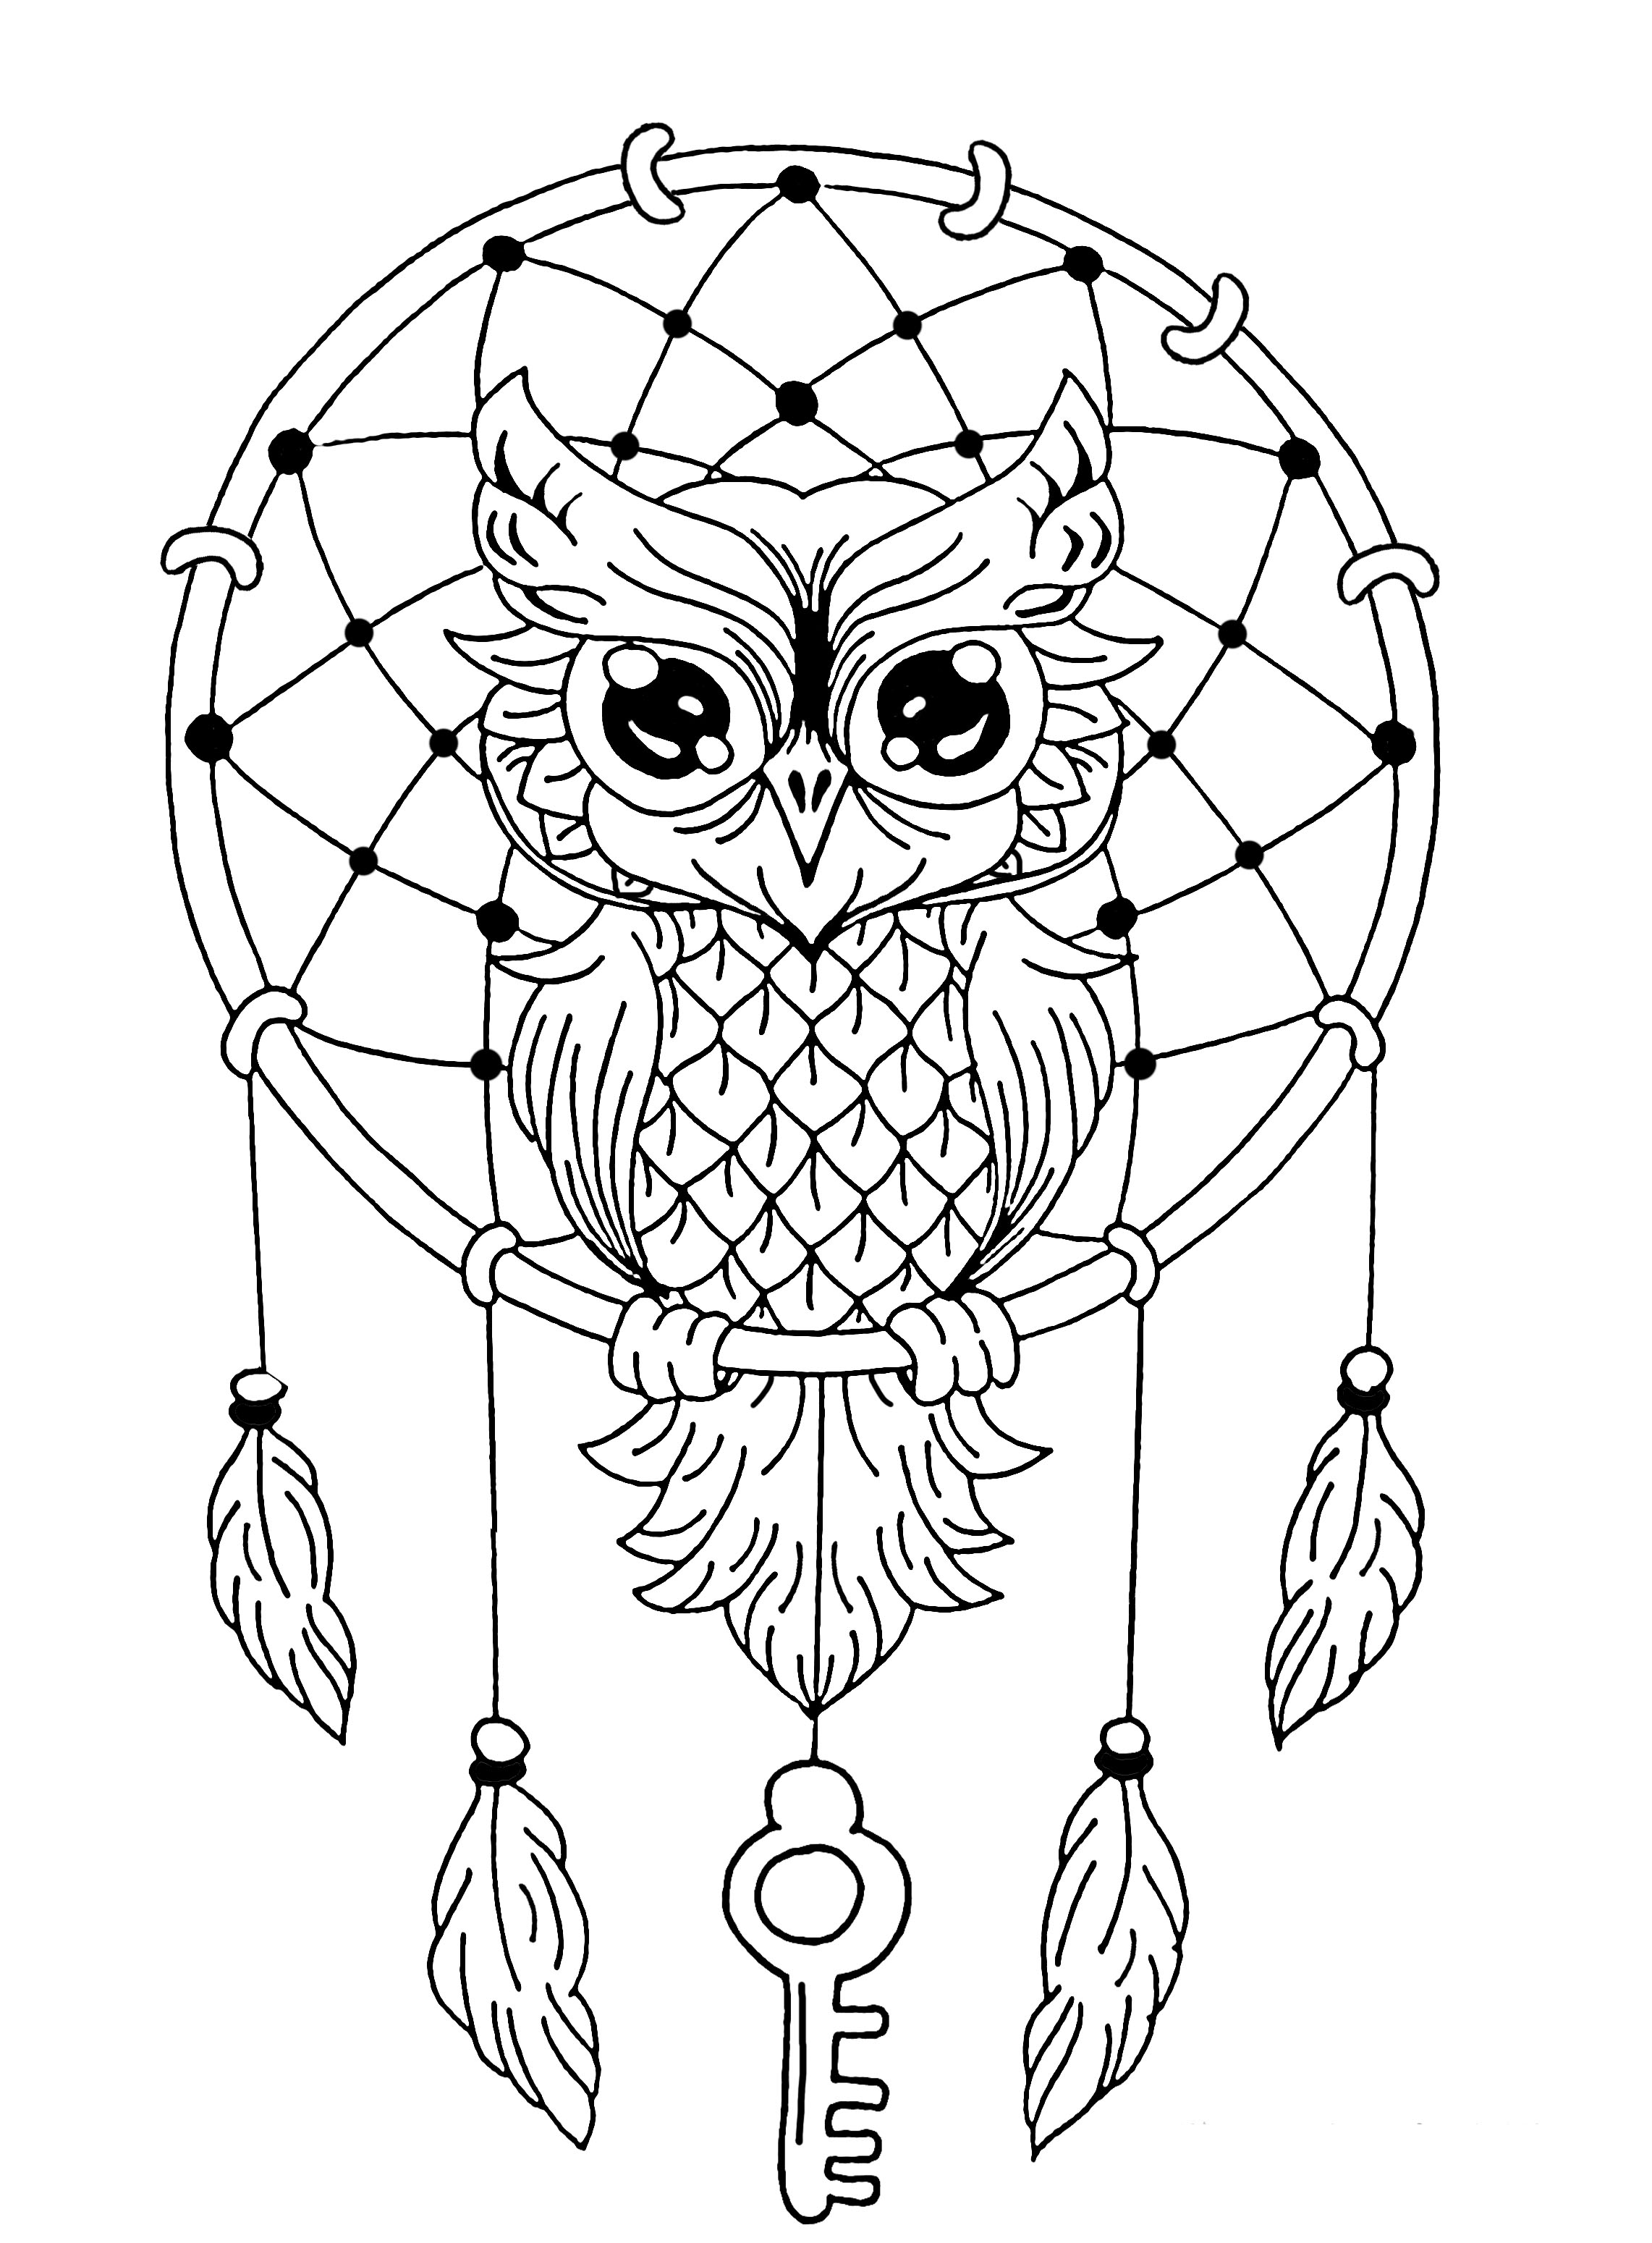 Owls for kids - Owls Kids Coloring Pages